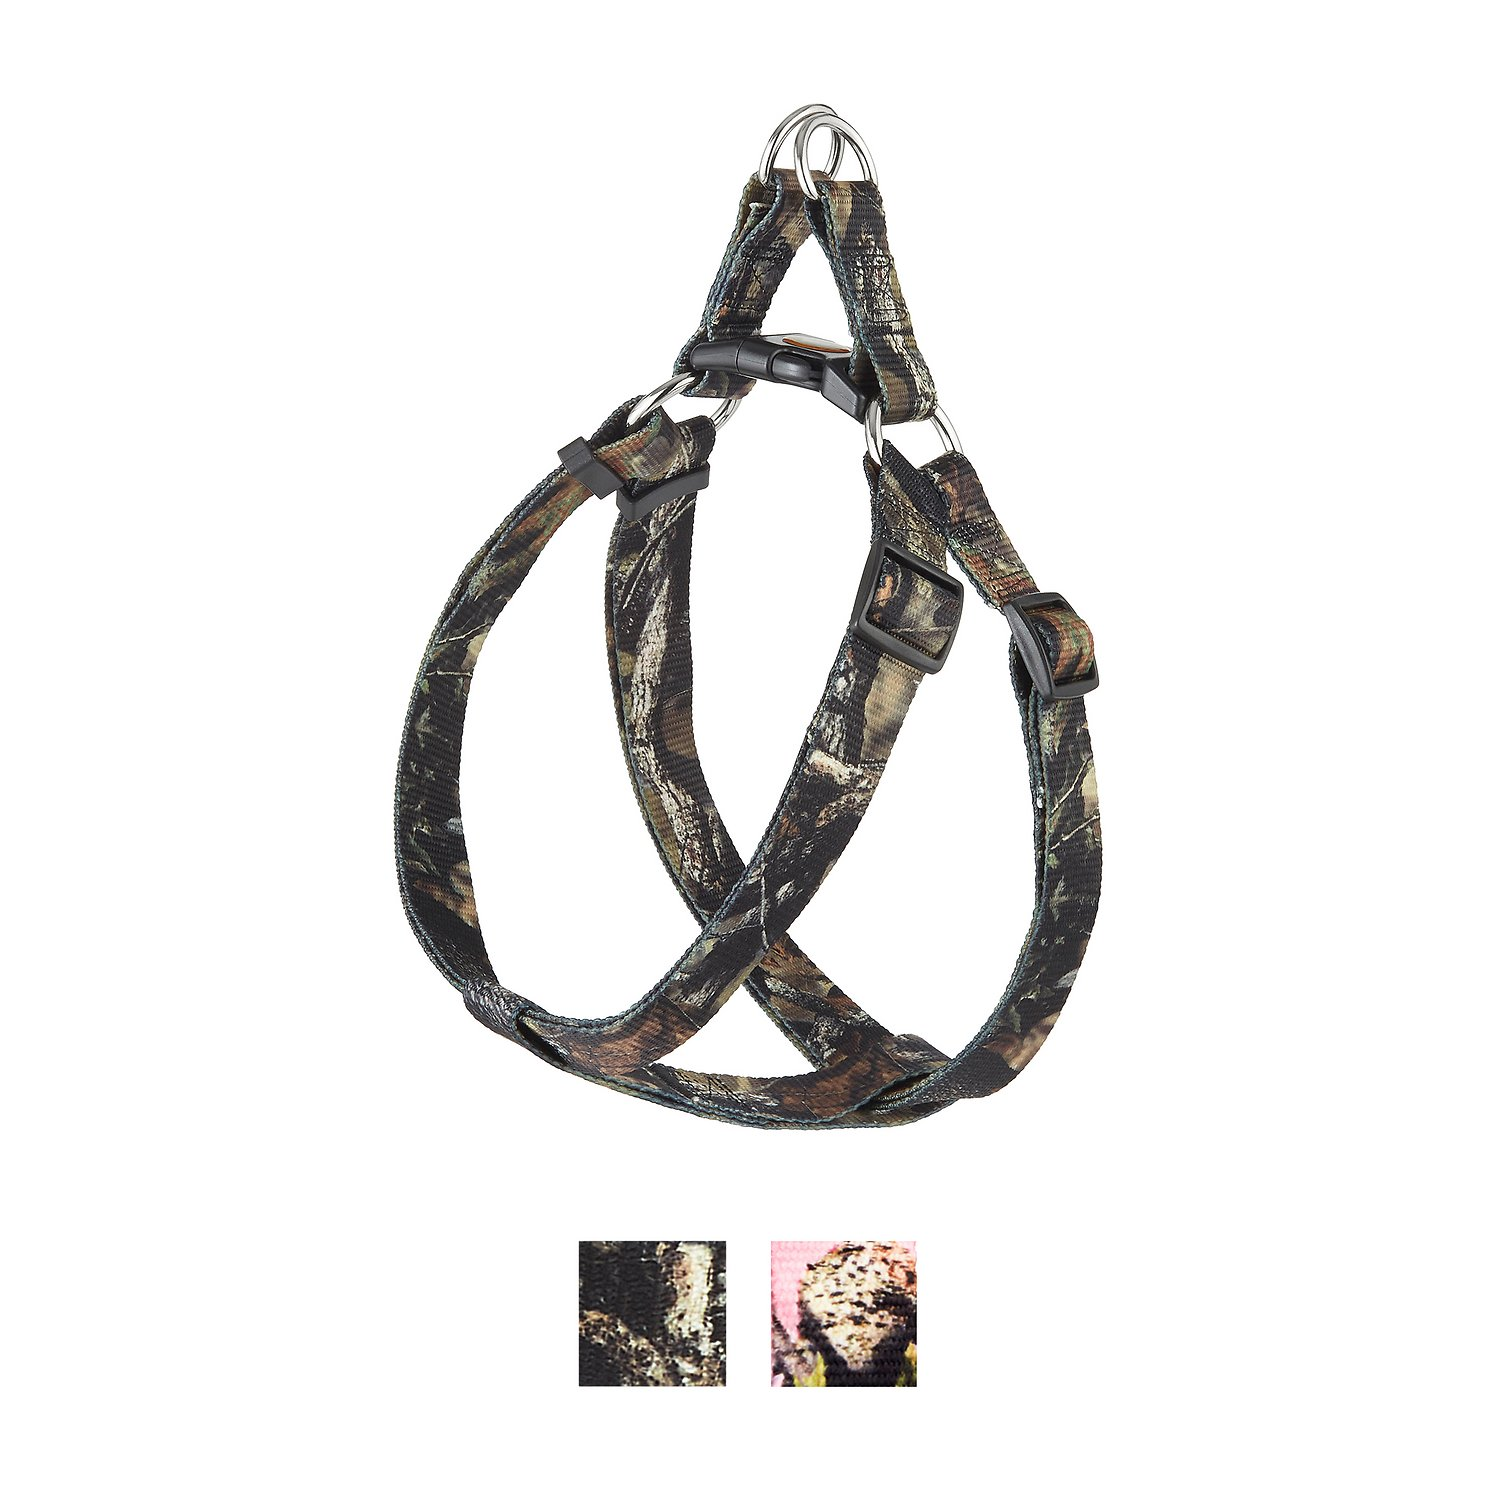 Pet Champion Hunting Camouflage Dog Harness Cover Camo Large